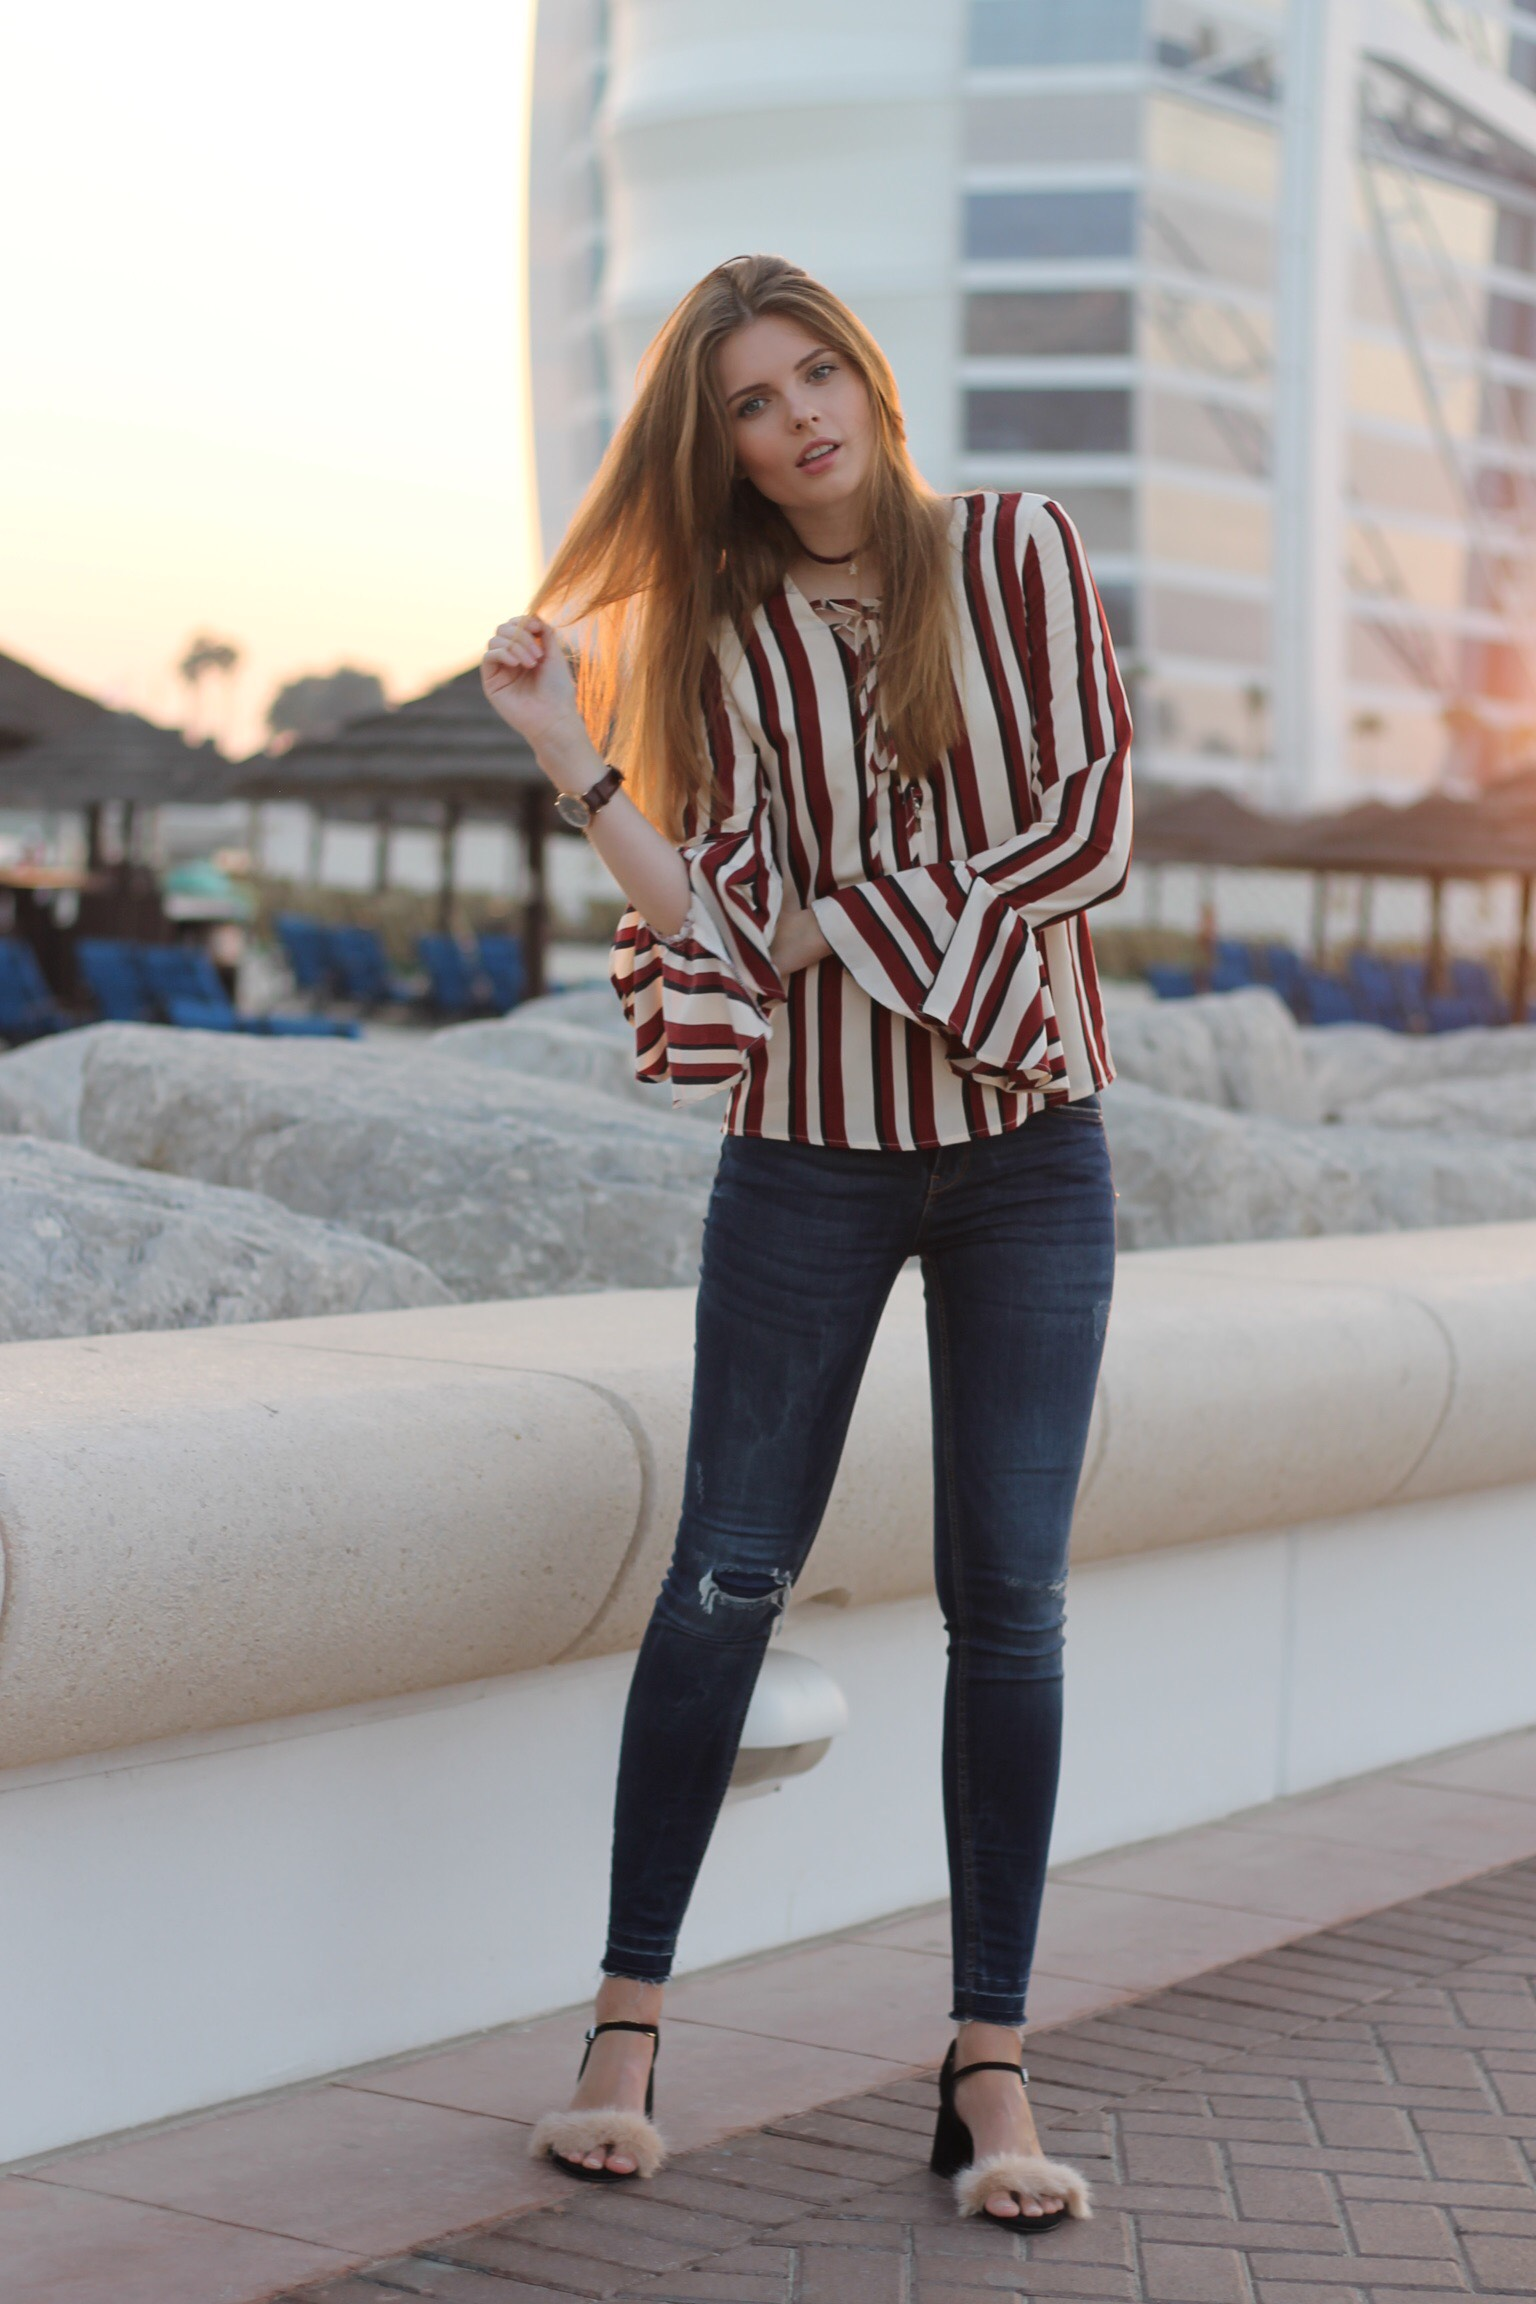 file15 Kopie - STRIPED BLOUSE OUTFIT IN DUBAI